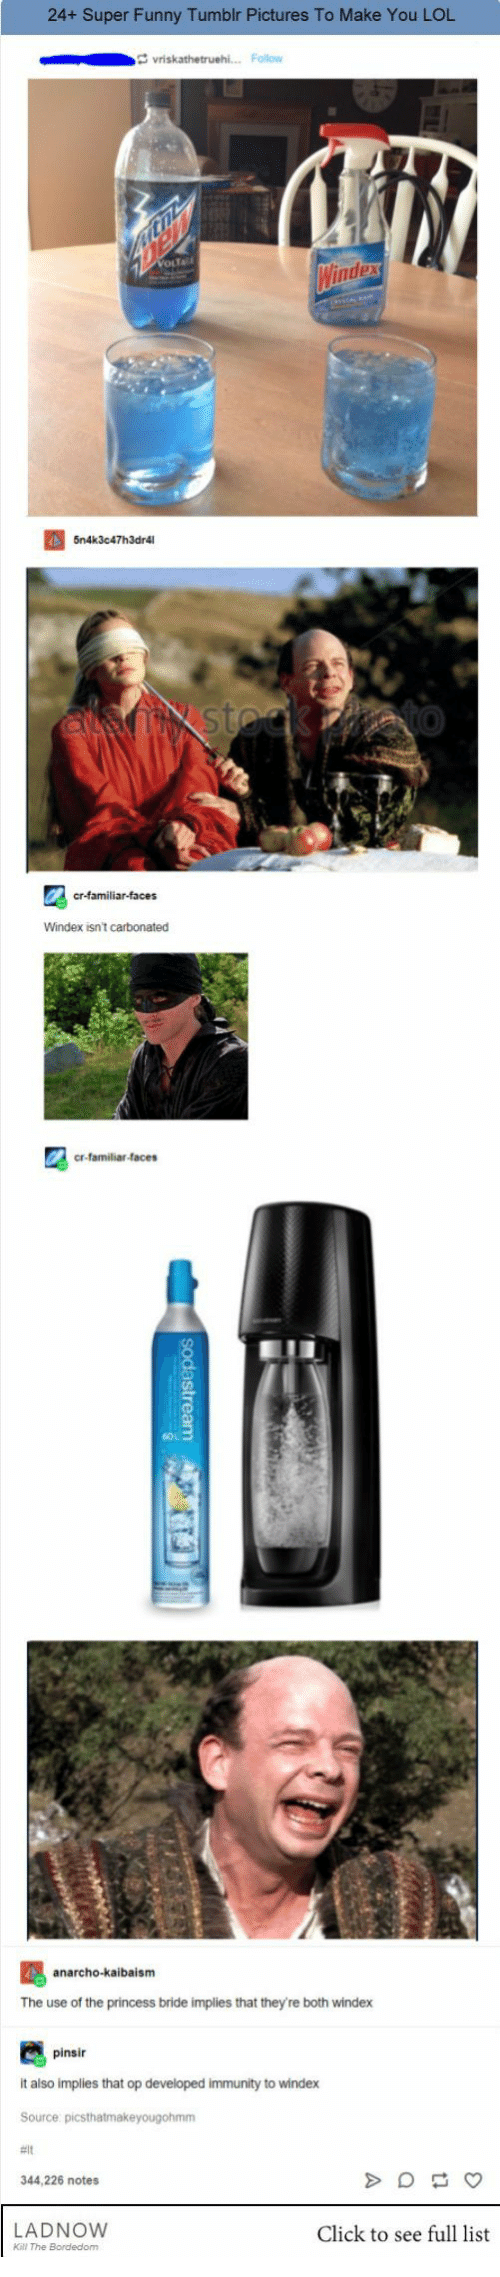 princess bride: 24+ Super Funny Tumblr Pictures To Make You LOL  Windex isnt carbonated  cr-familiar-faces  anarcho-kaibaism  The use of the princess bride implies that they're both windex  pinsir  it also implies that op developed immunity to windex  344,226 notes  LADNOWw  Click to see full list  Kall The Bordedom